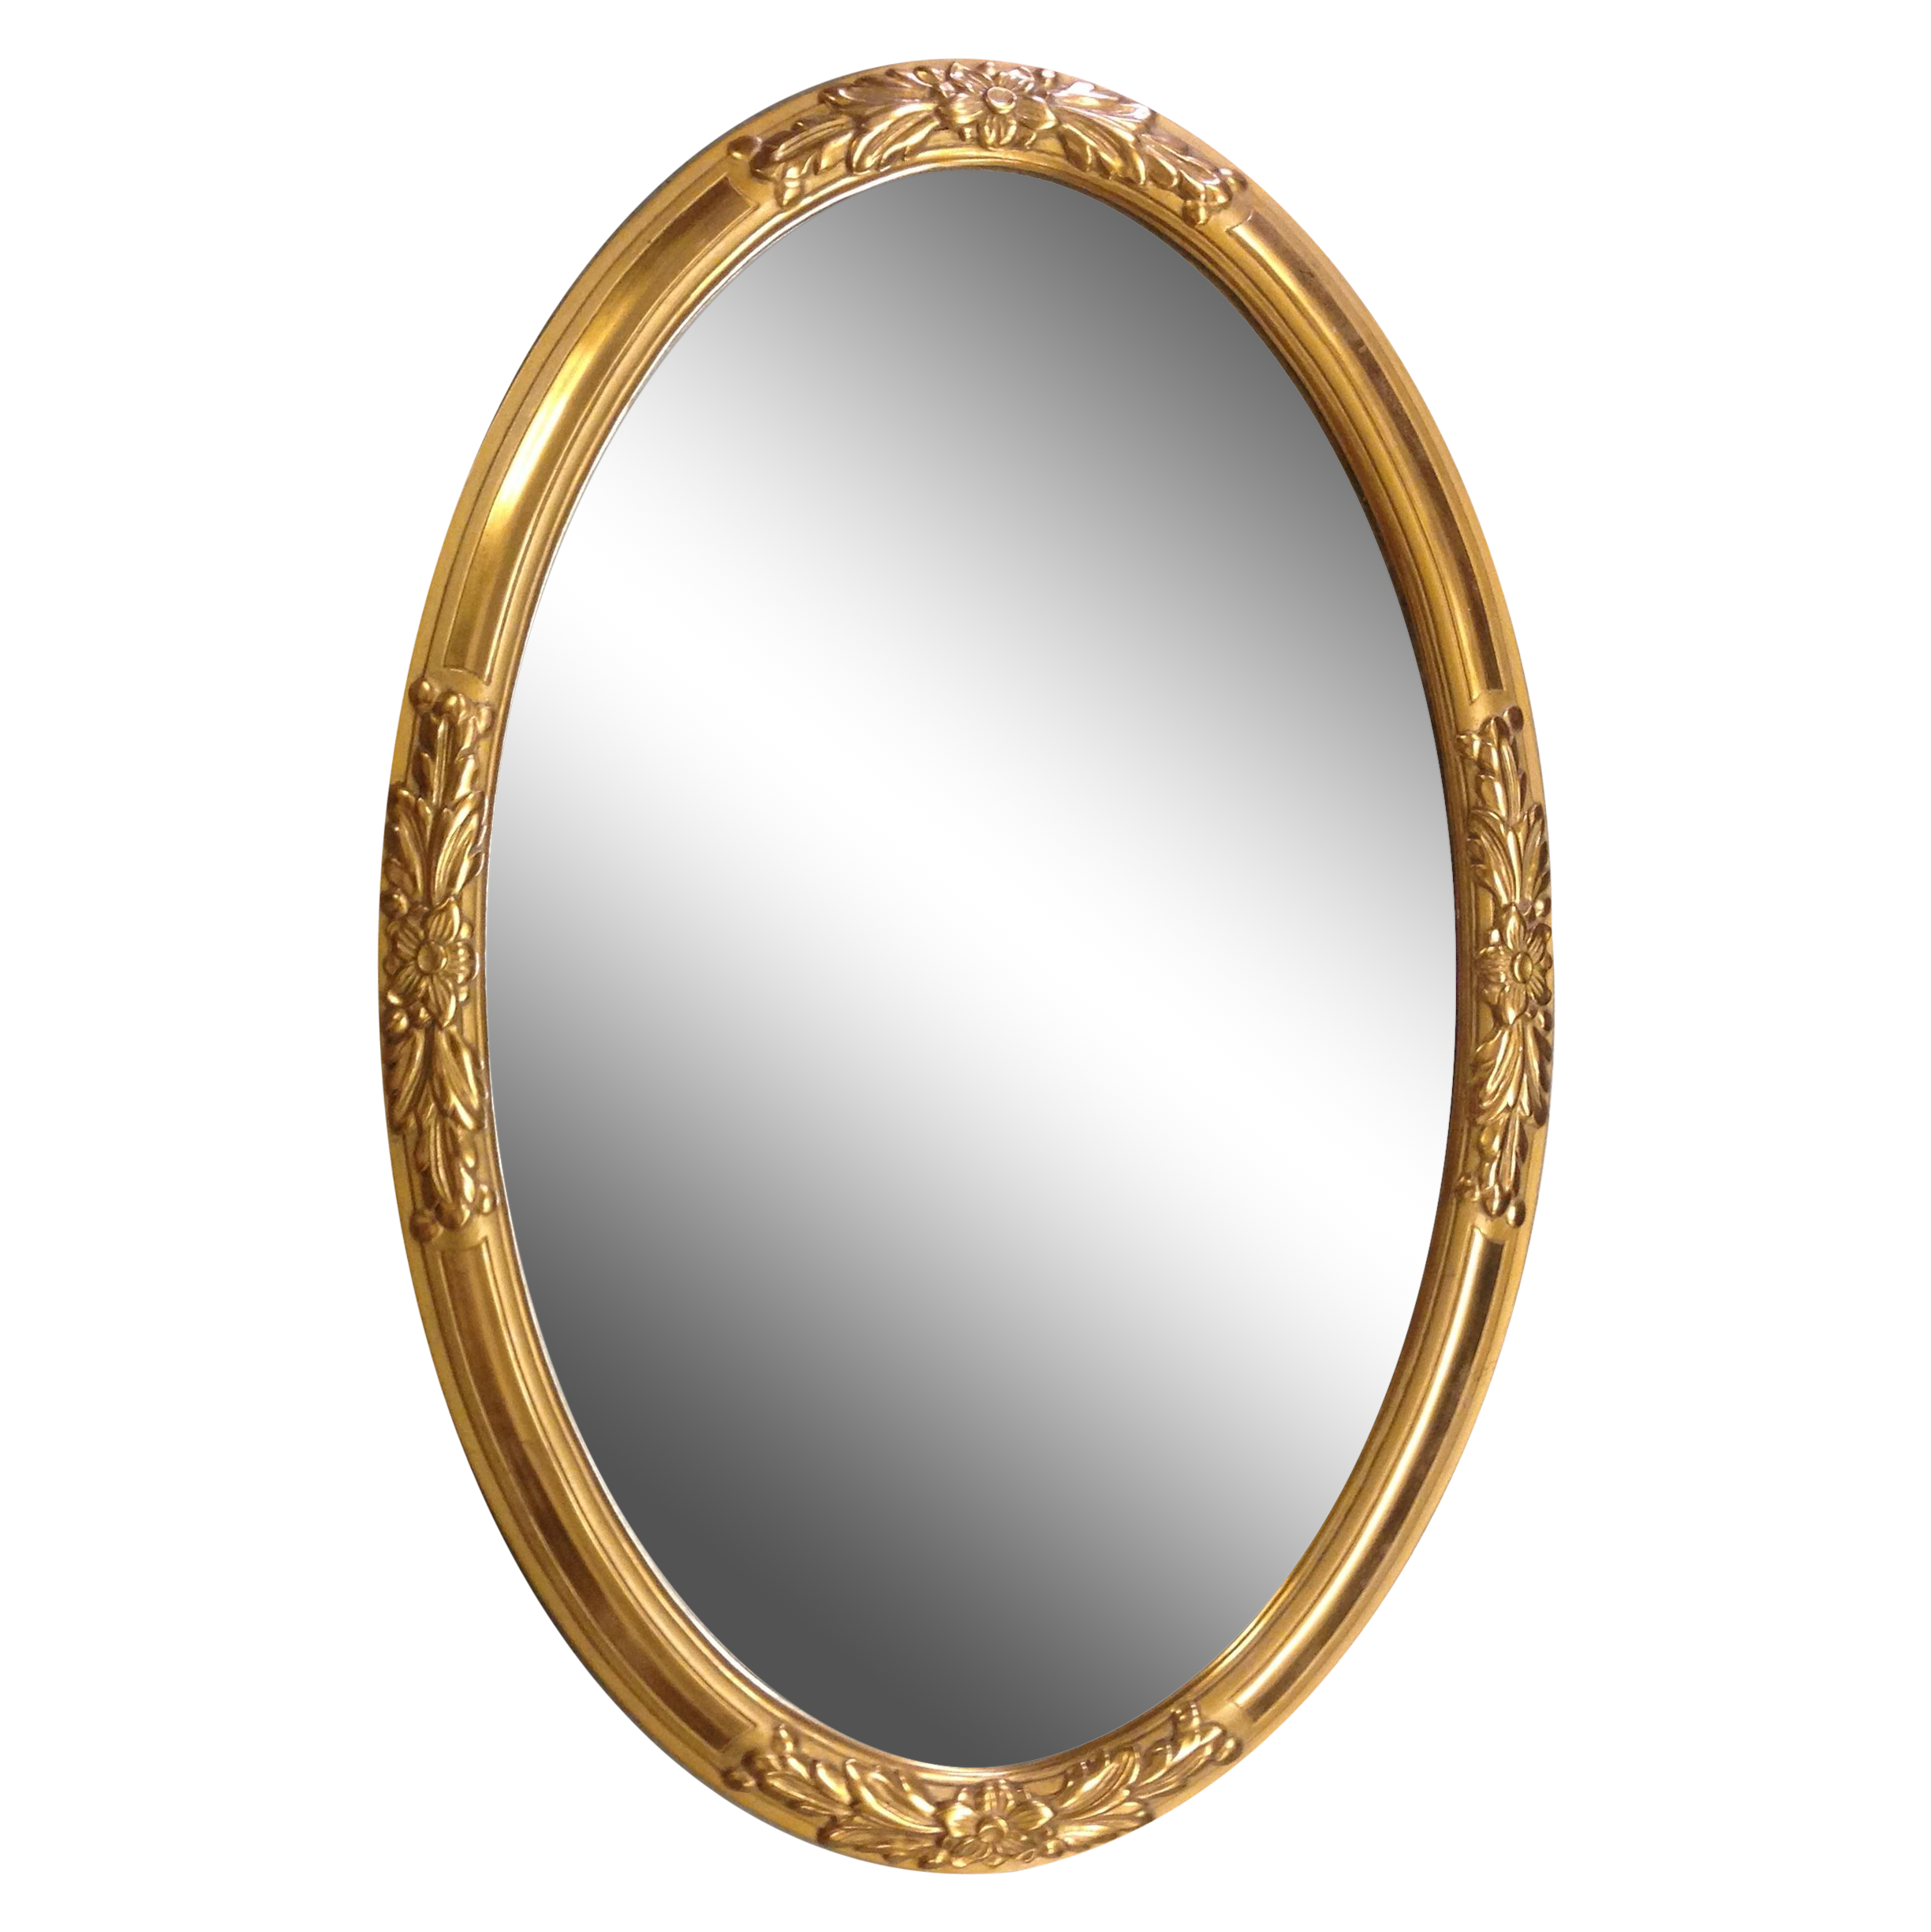 1930s French Gold Wood Framed Oval Mirror Chairish